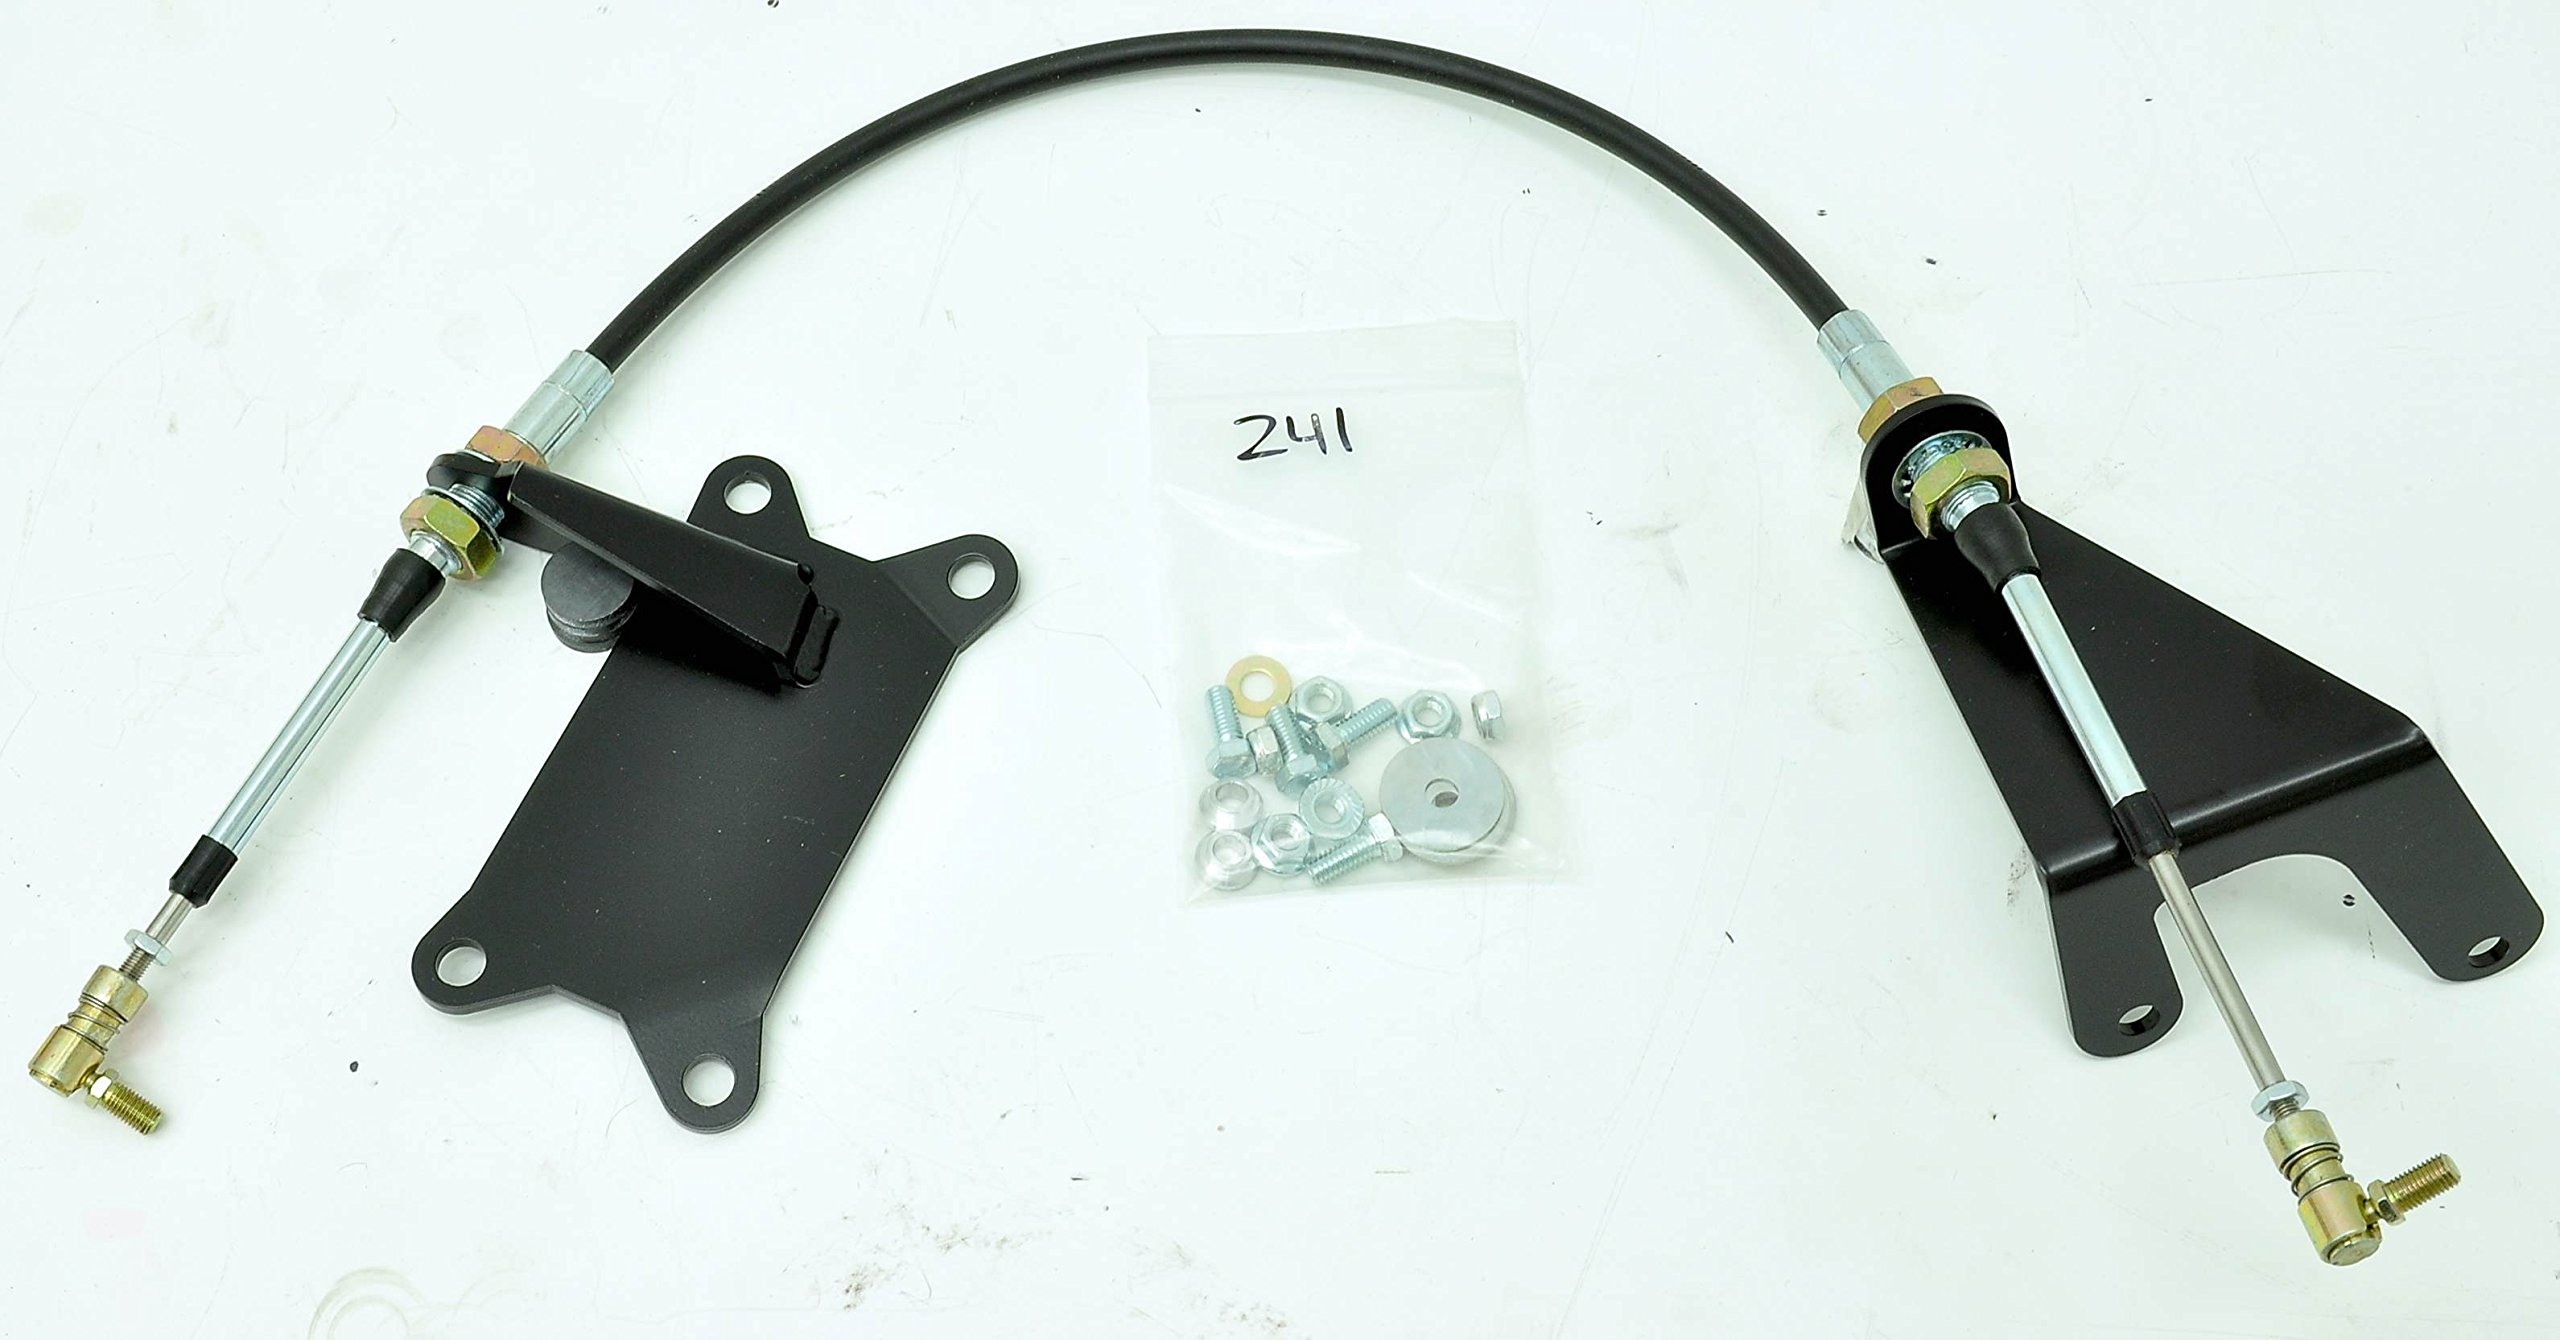 Jeep Wrangler 03-06 241 Cable Shifter Conversion RUBICON ONLY will not work with other models